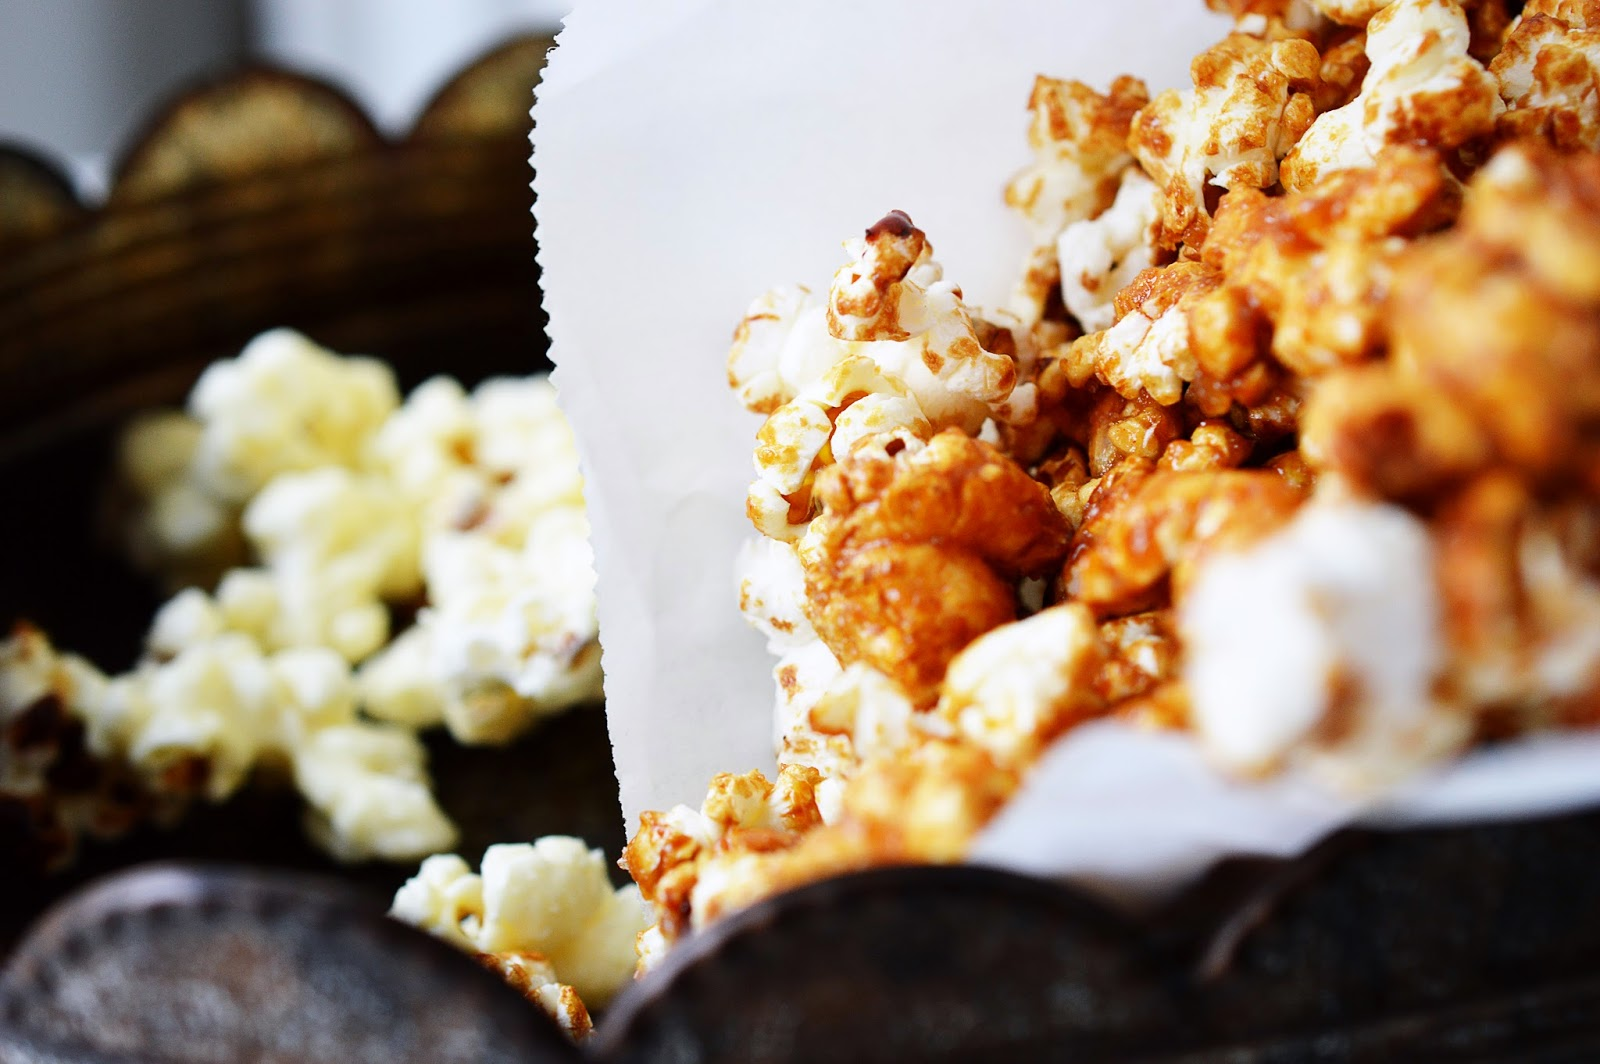 Honey Salted Caramel & White Chocolate Popcorn Recipe | Motte's Blog